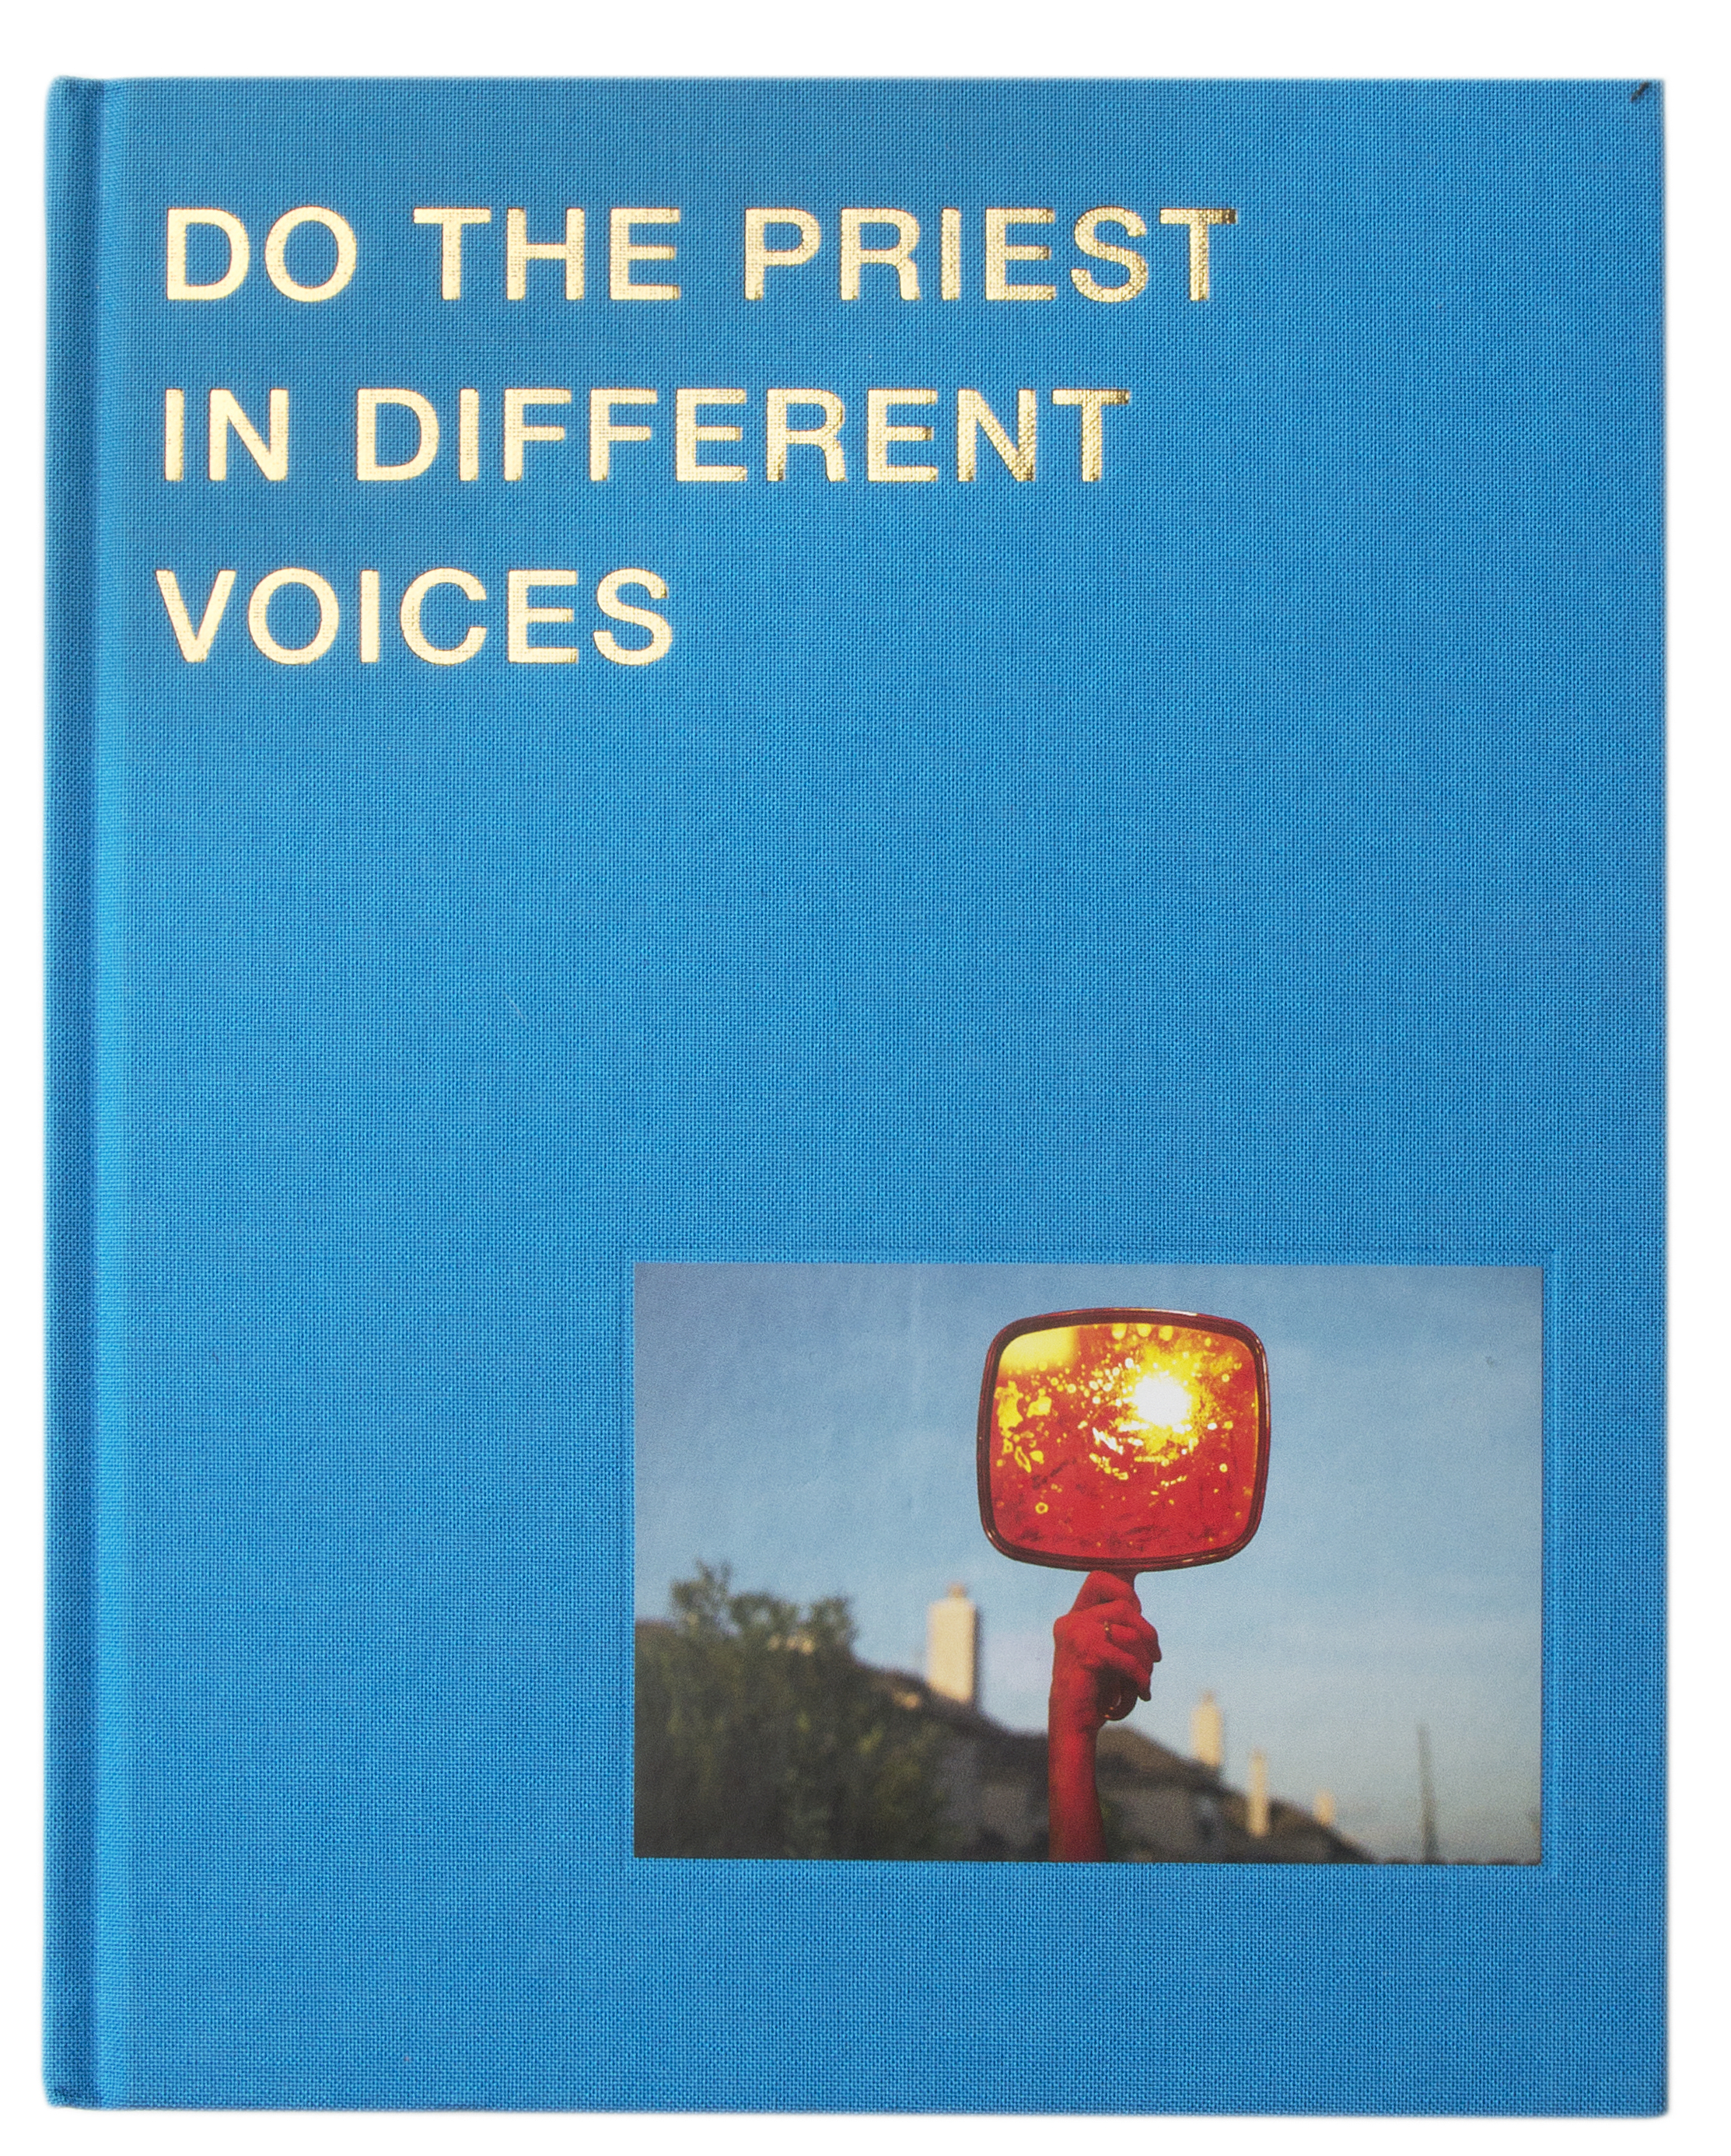 Do the Priest in Different Voices